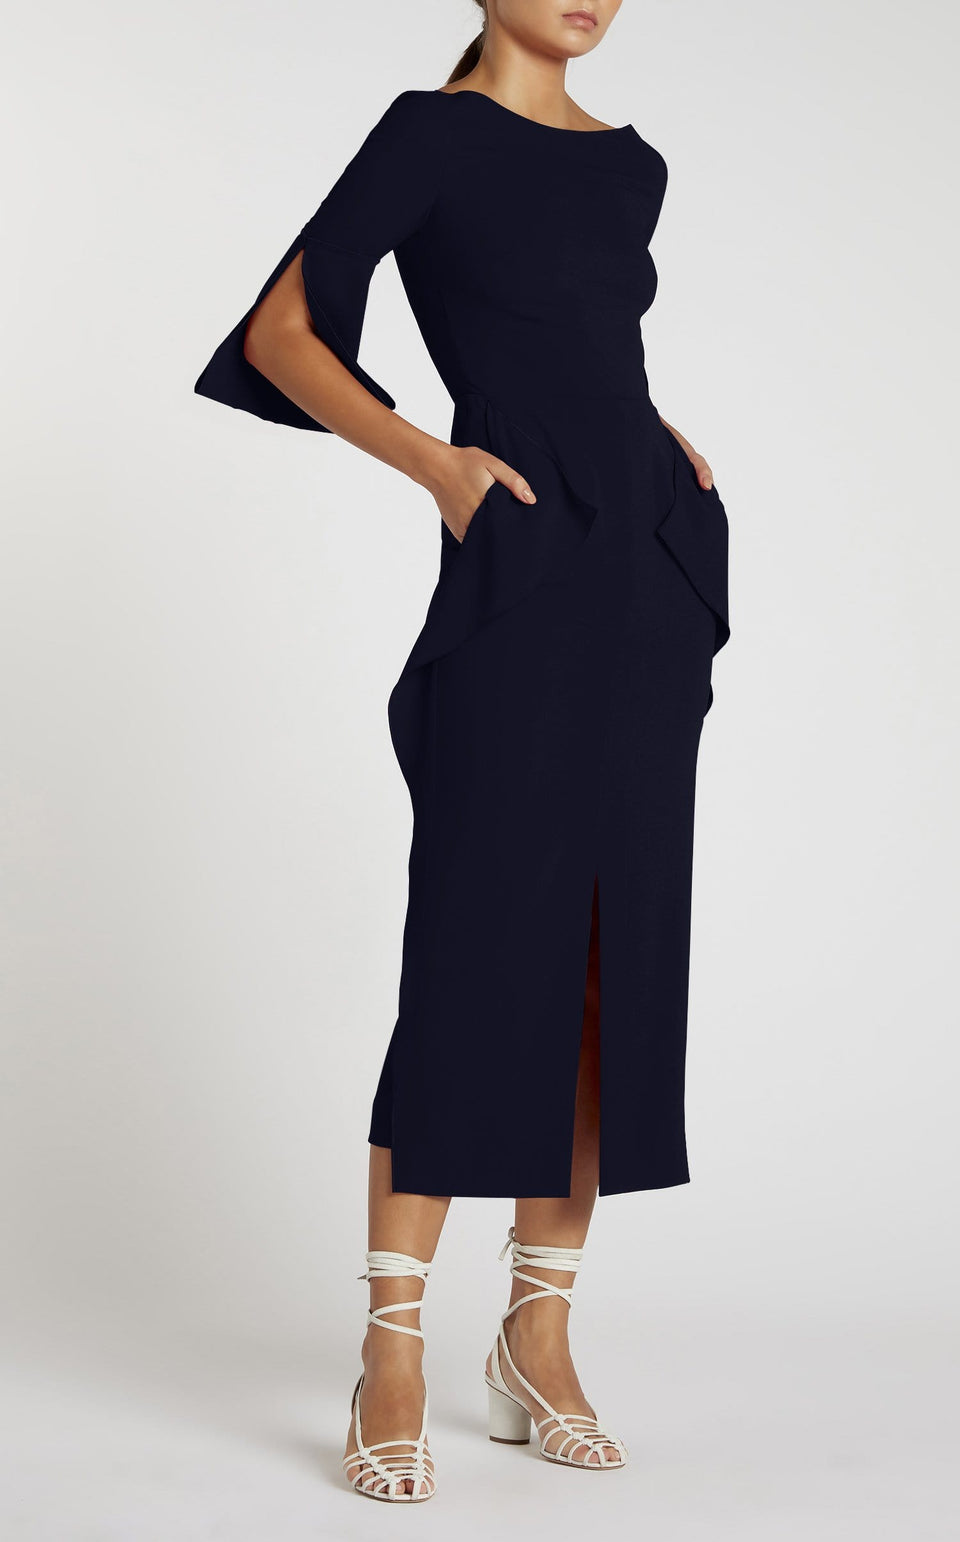 Crane Dress In Navy from Roland Mouret